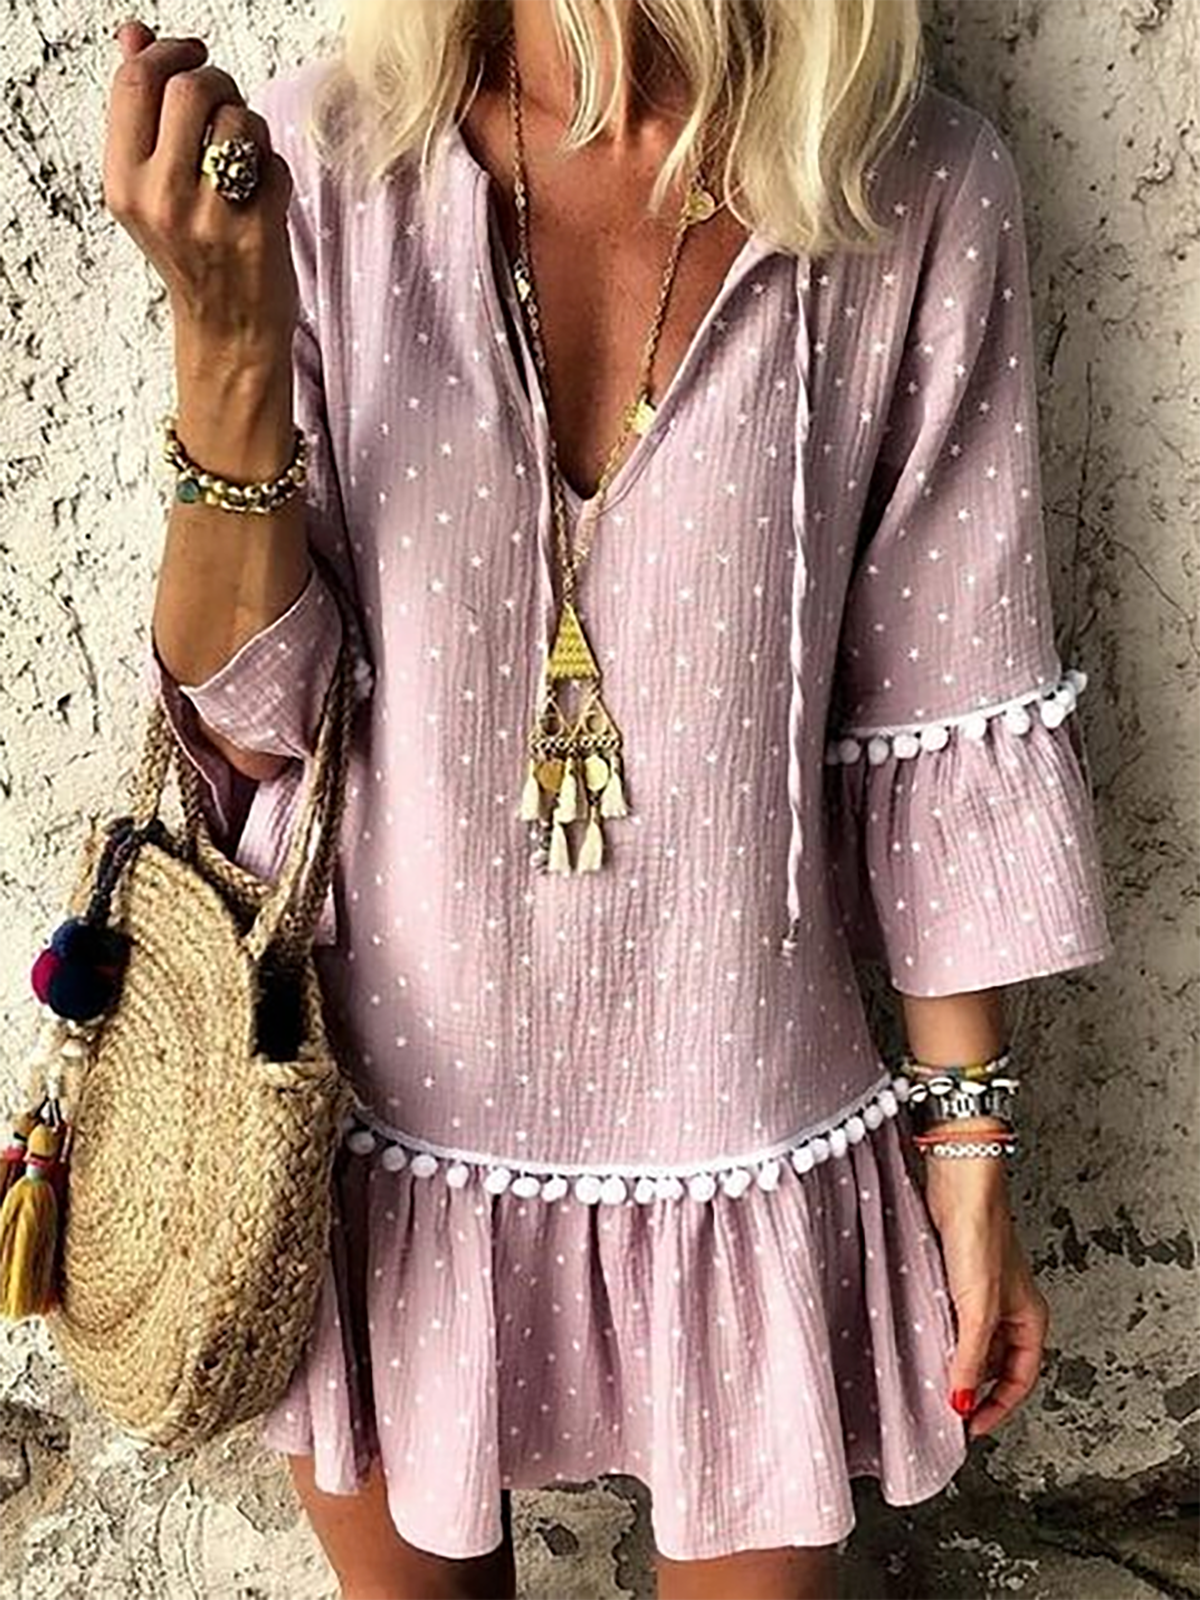 cargo | linen | summer | summer styles | linen clothes | cargo clothes | summer clothes | summer styles for mom and dad | fashion | trends